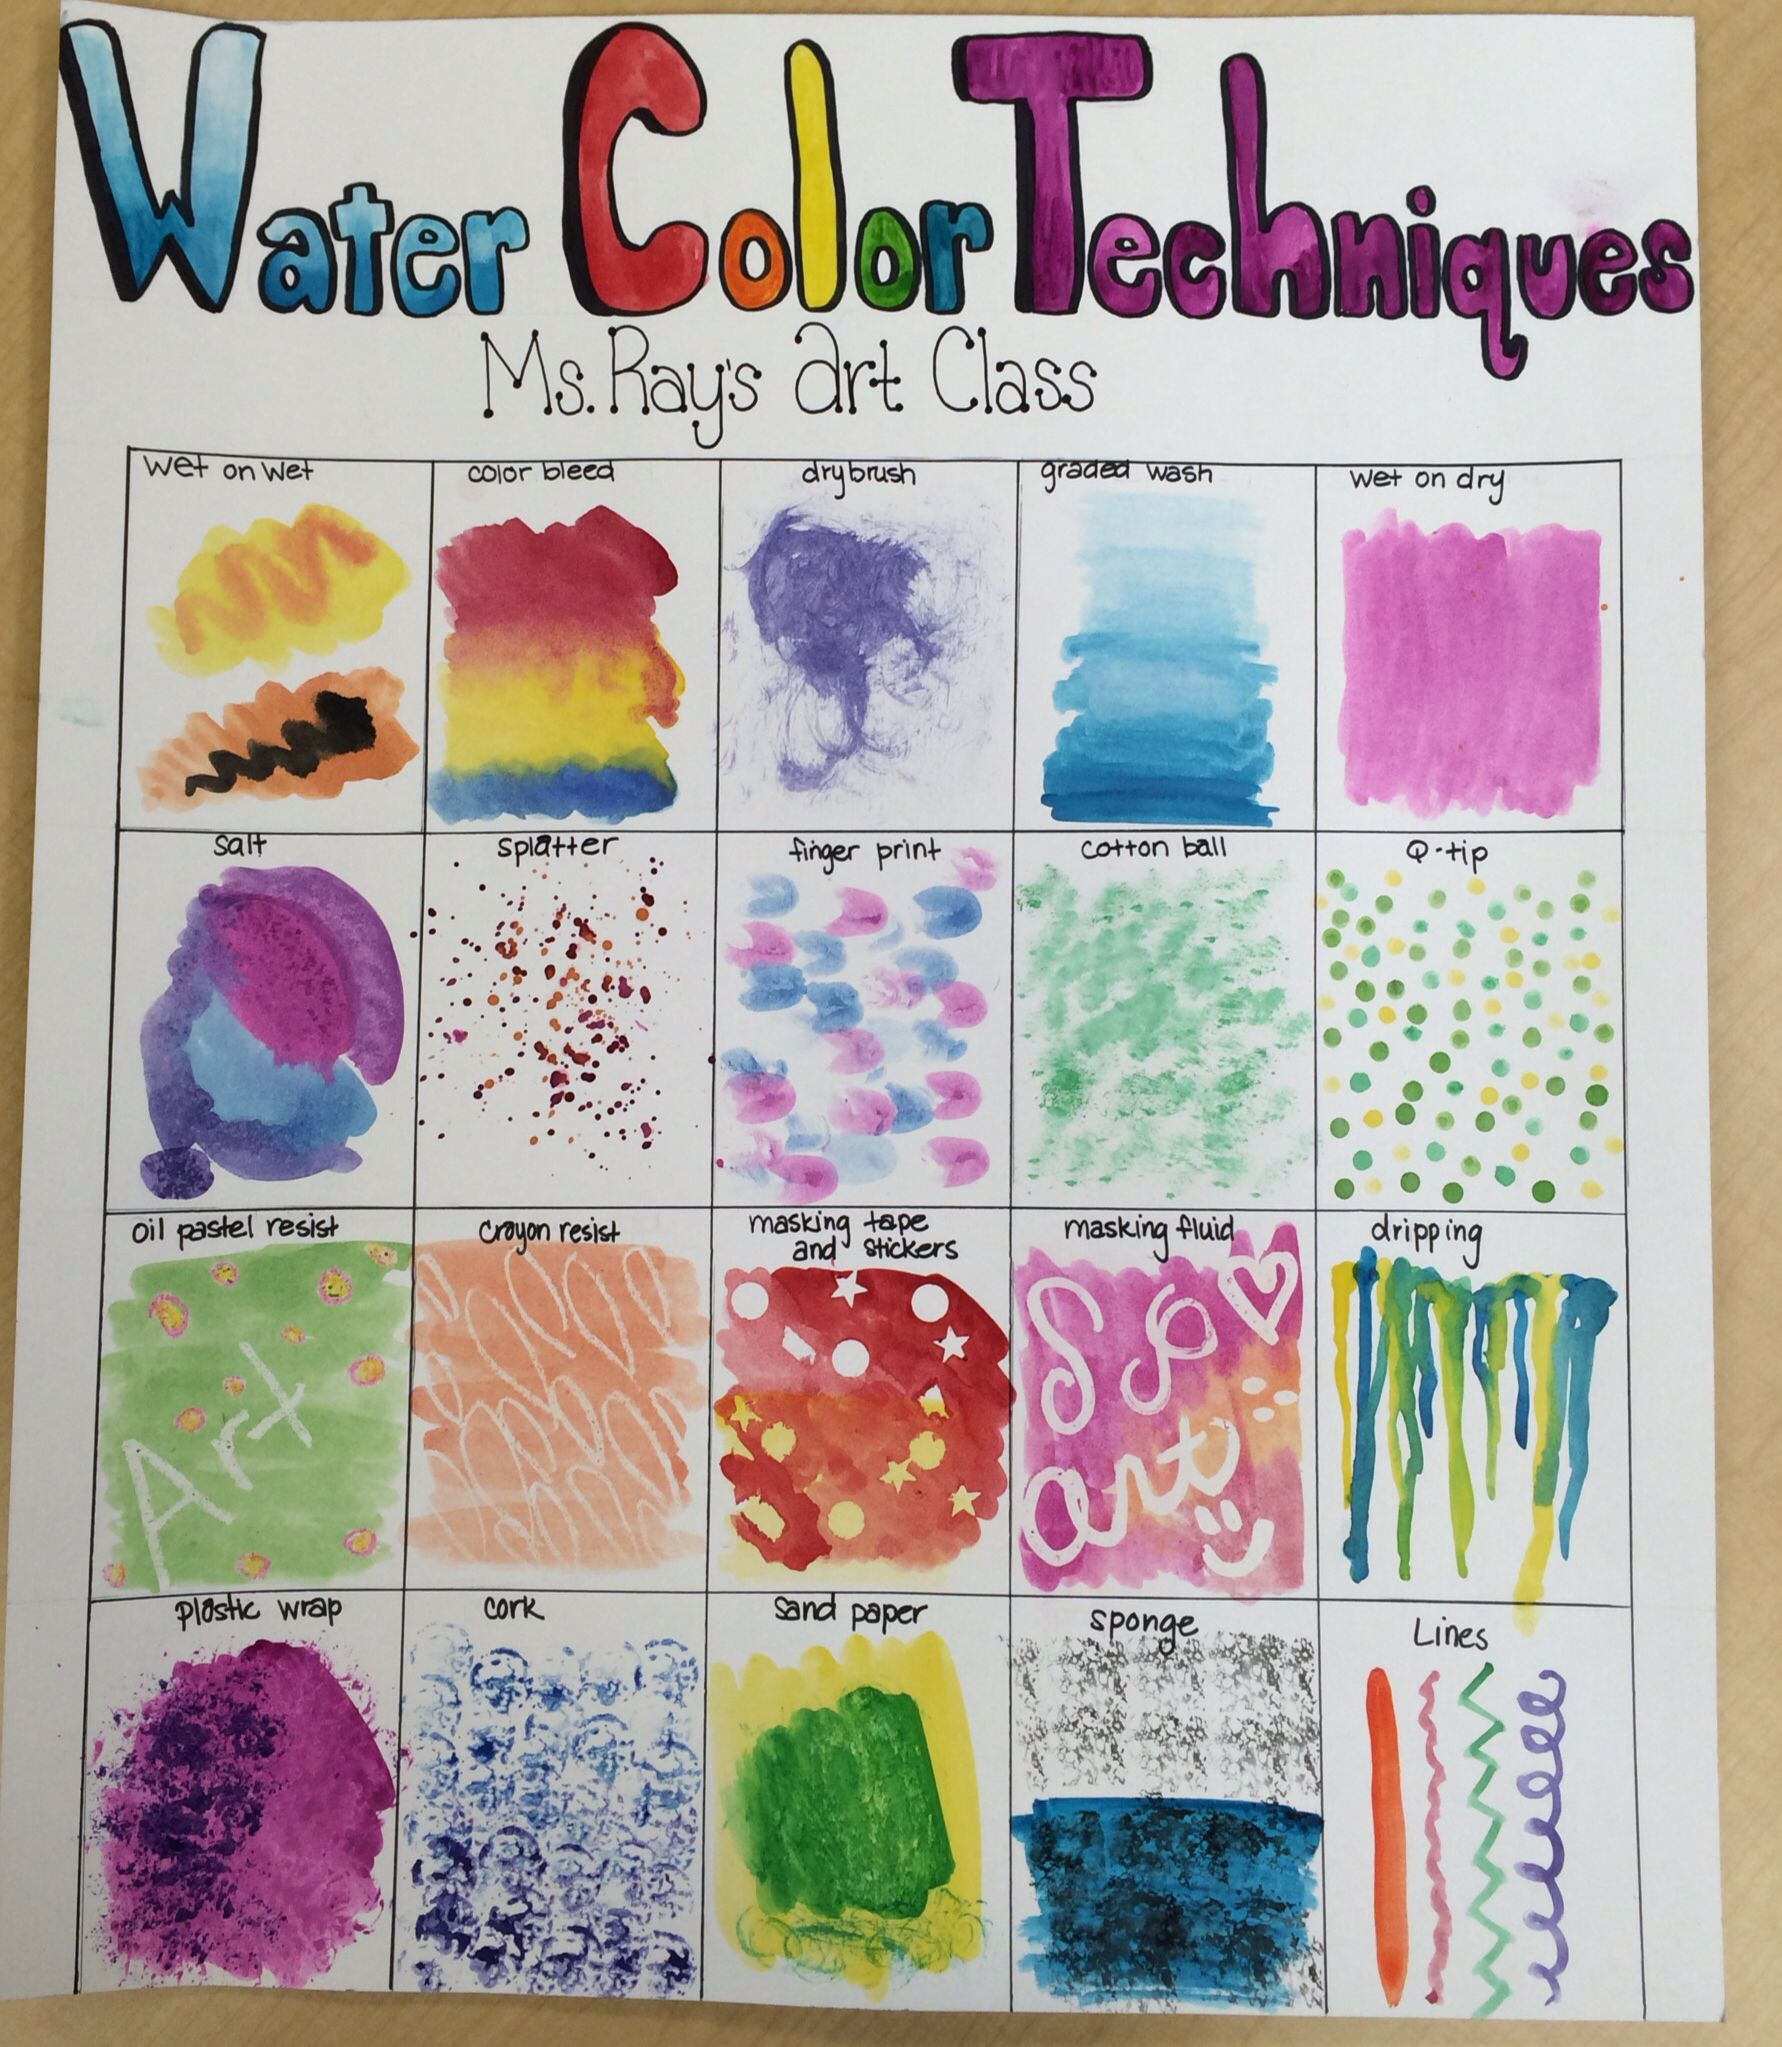 Water Color Techniques Poster Art Lessons Elementary Art